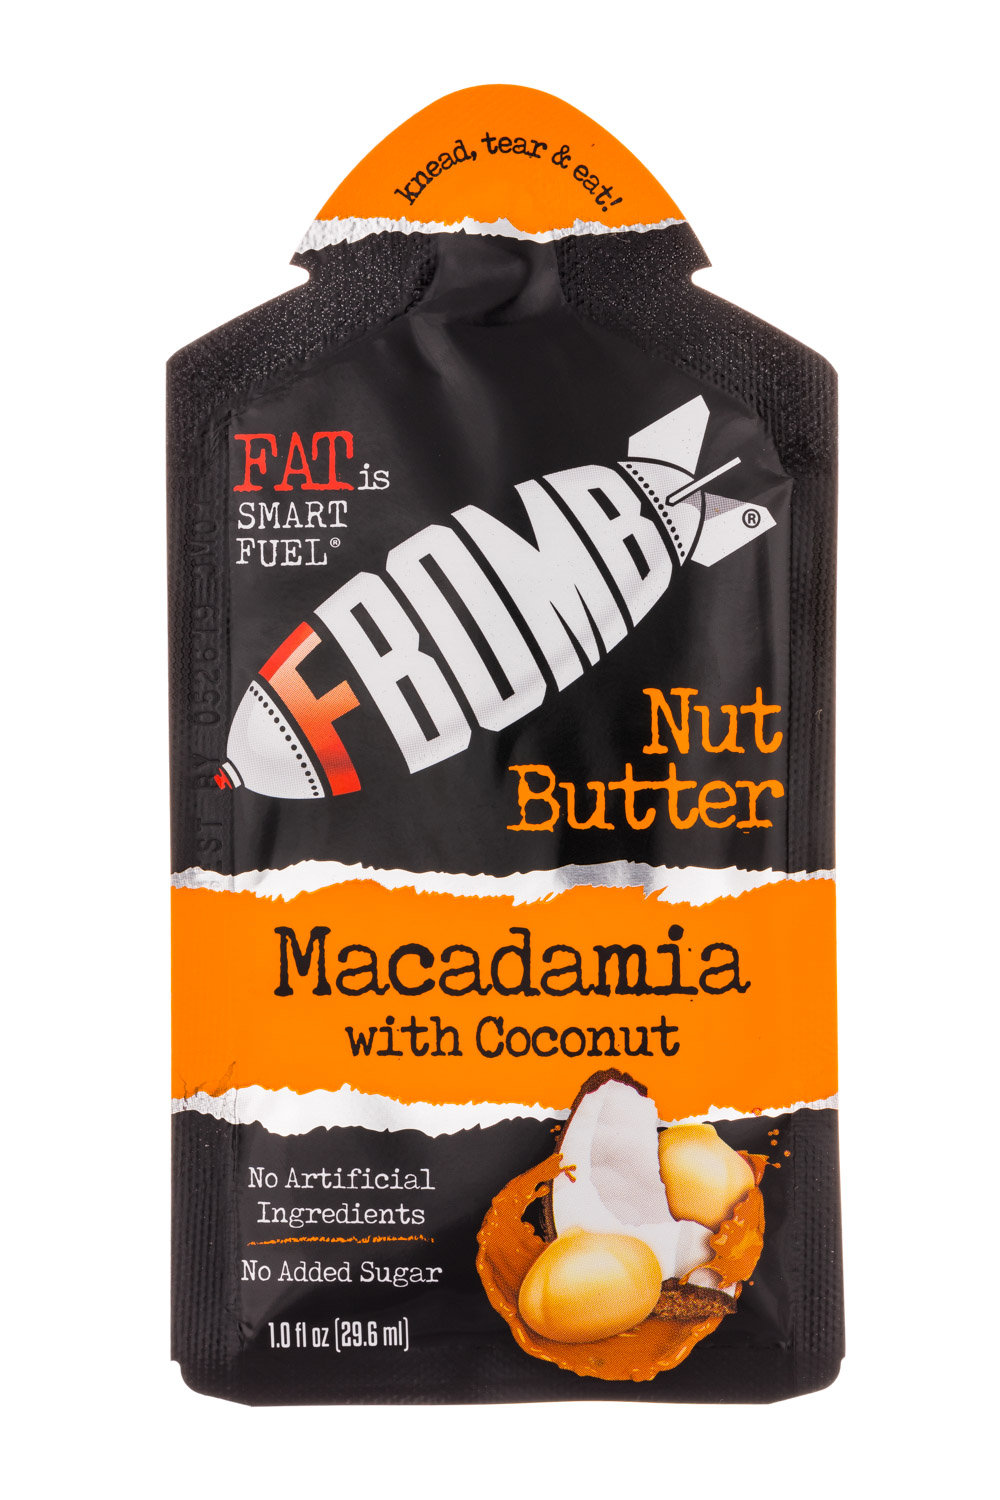 Macadamia with Coconut